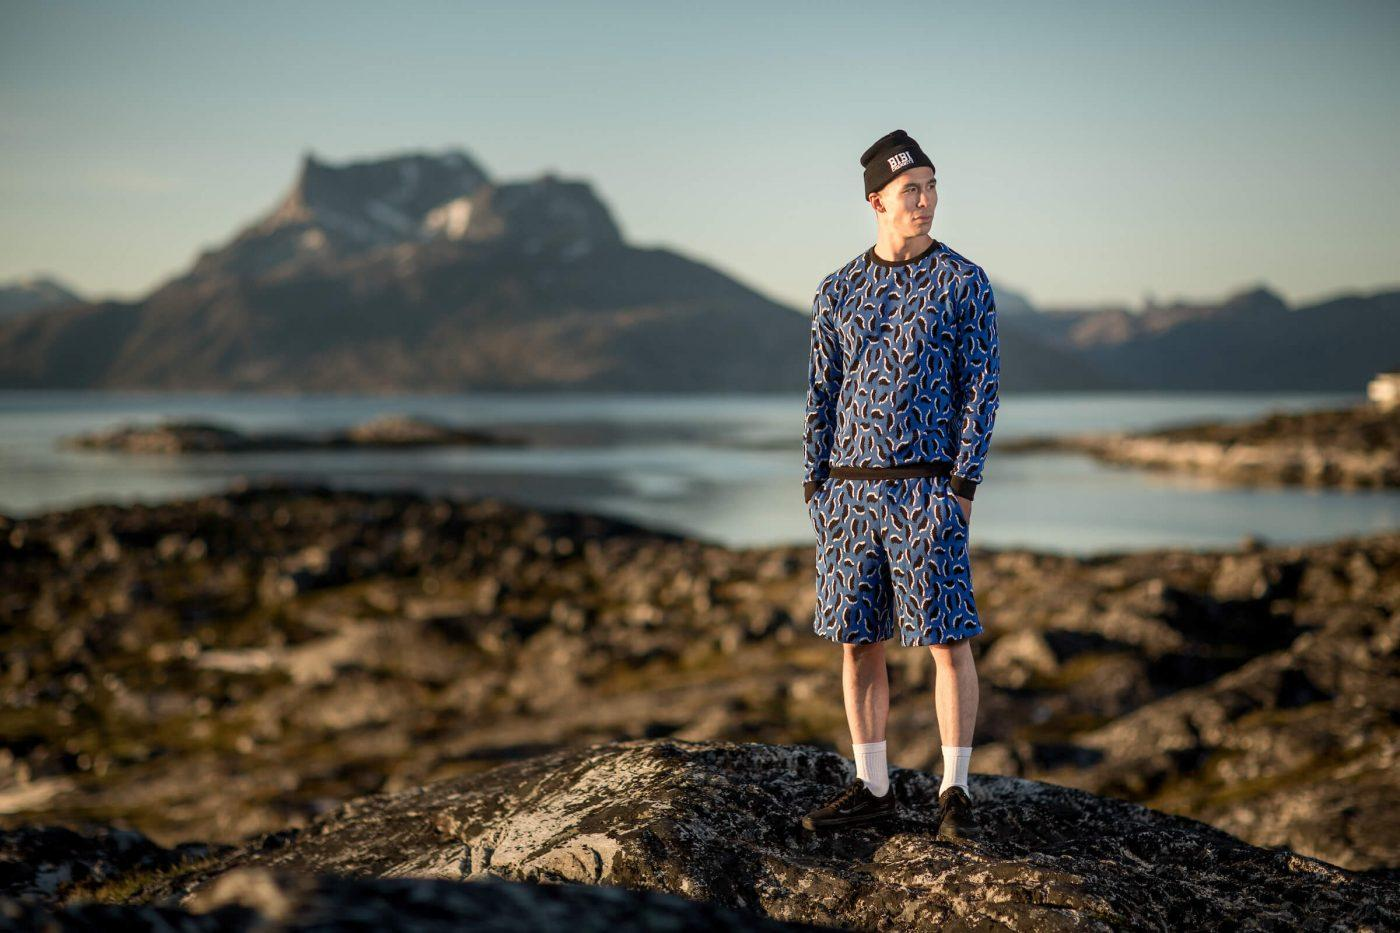 A Bibi Chemnitz clothing model from Nuuk in Greenland with the mountain Sermitsiaq behind him, by Mads Pihl